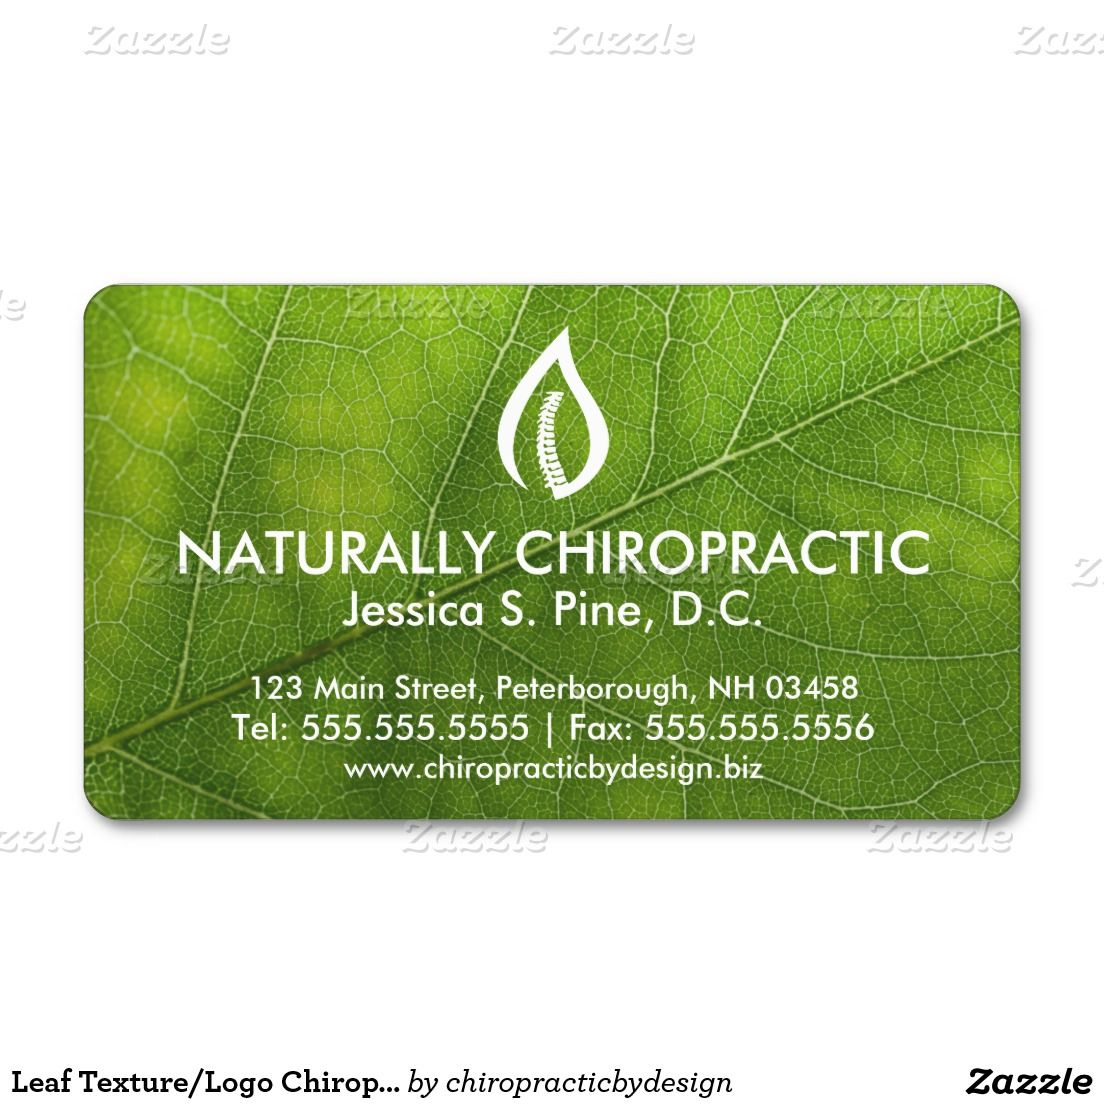 Leaf texturelogo chiropractic business cards chiropractic leaf texturelogo chiropractic business cards colourmoves